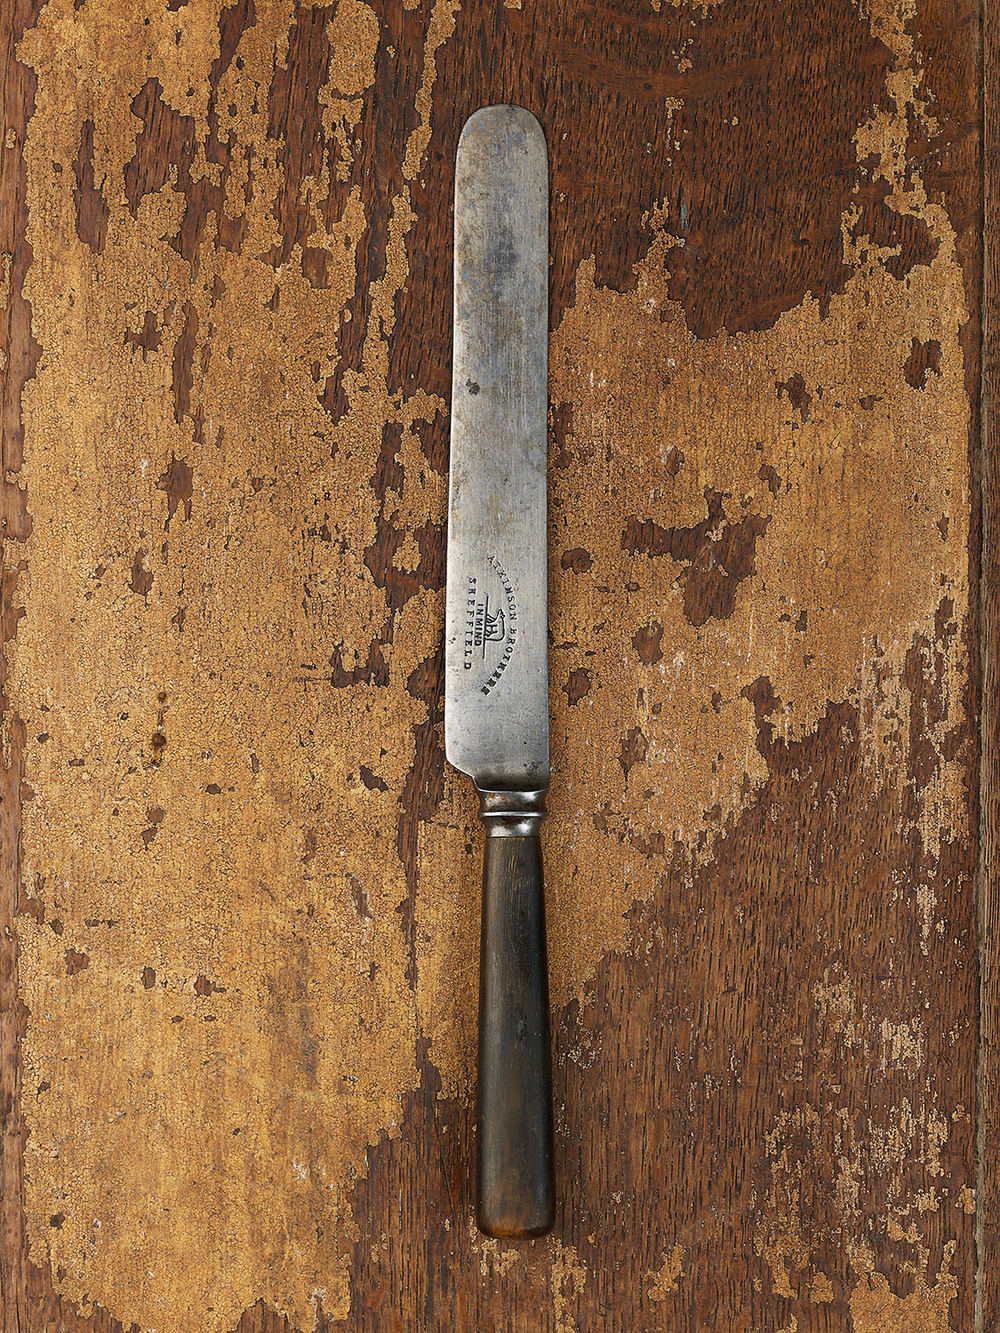 #34 Atkinson Bros Knife